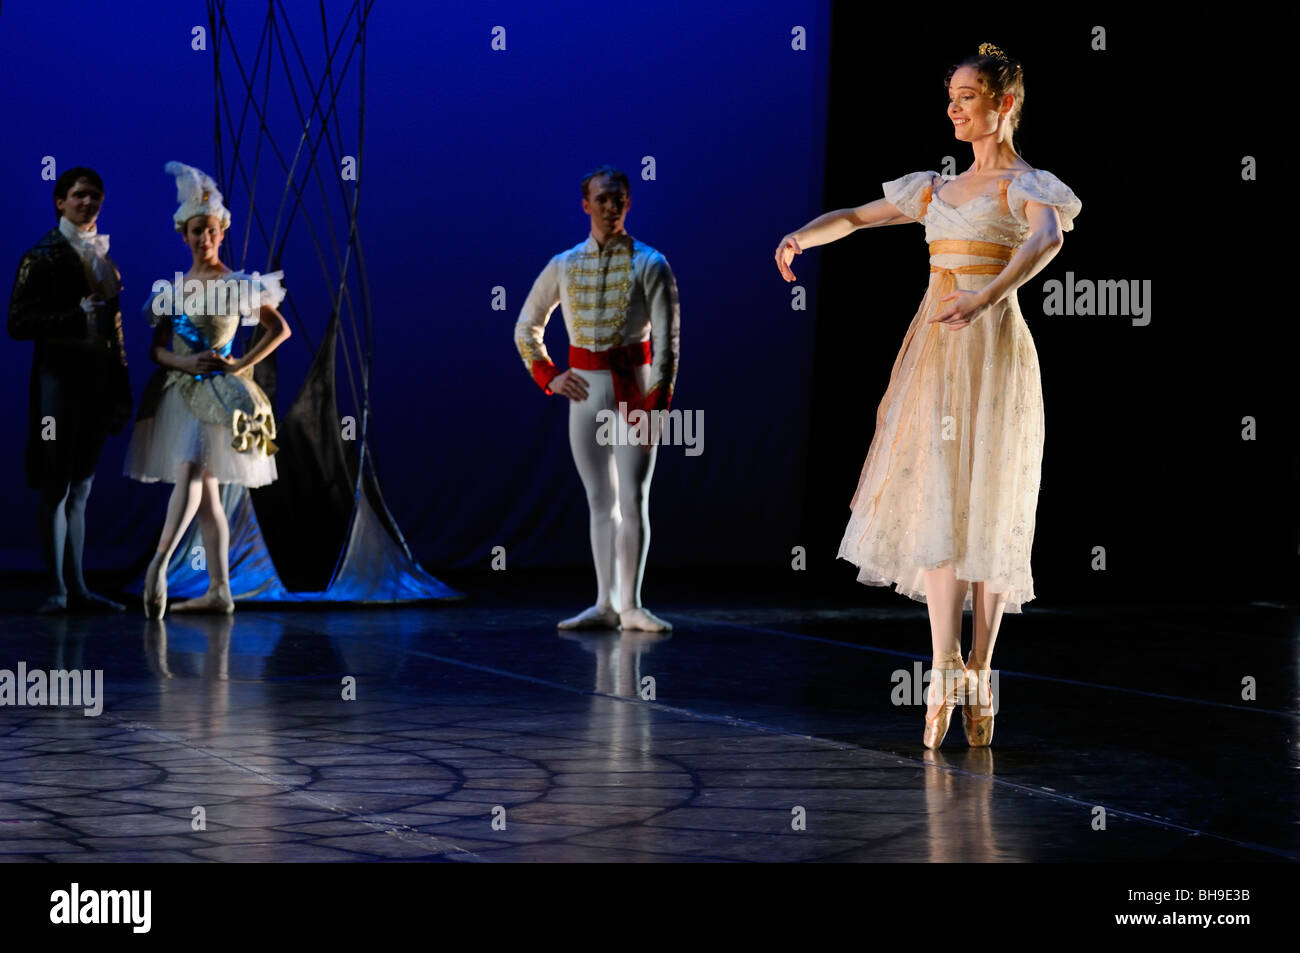 Cinderella dancing solo en pointe at the Ball while Prince Charming looks on in Ballet Jorgen stage production - Stock Image